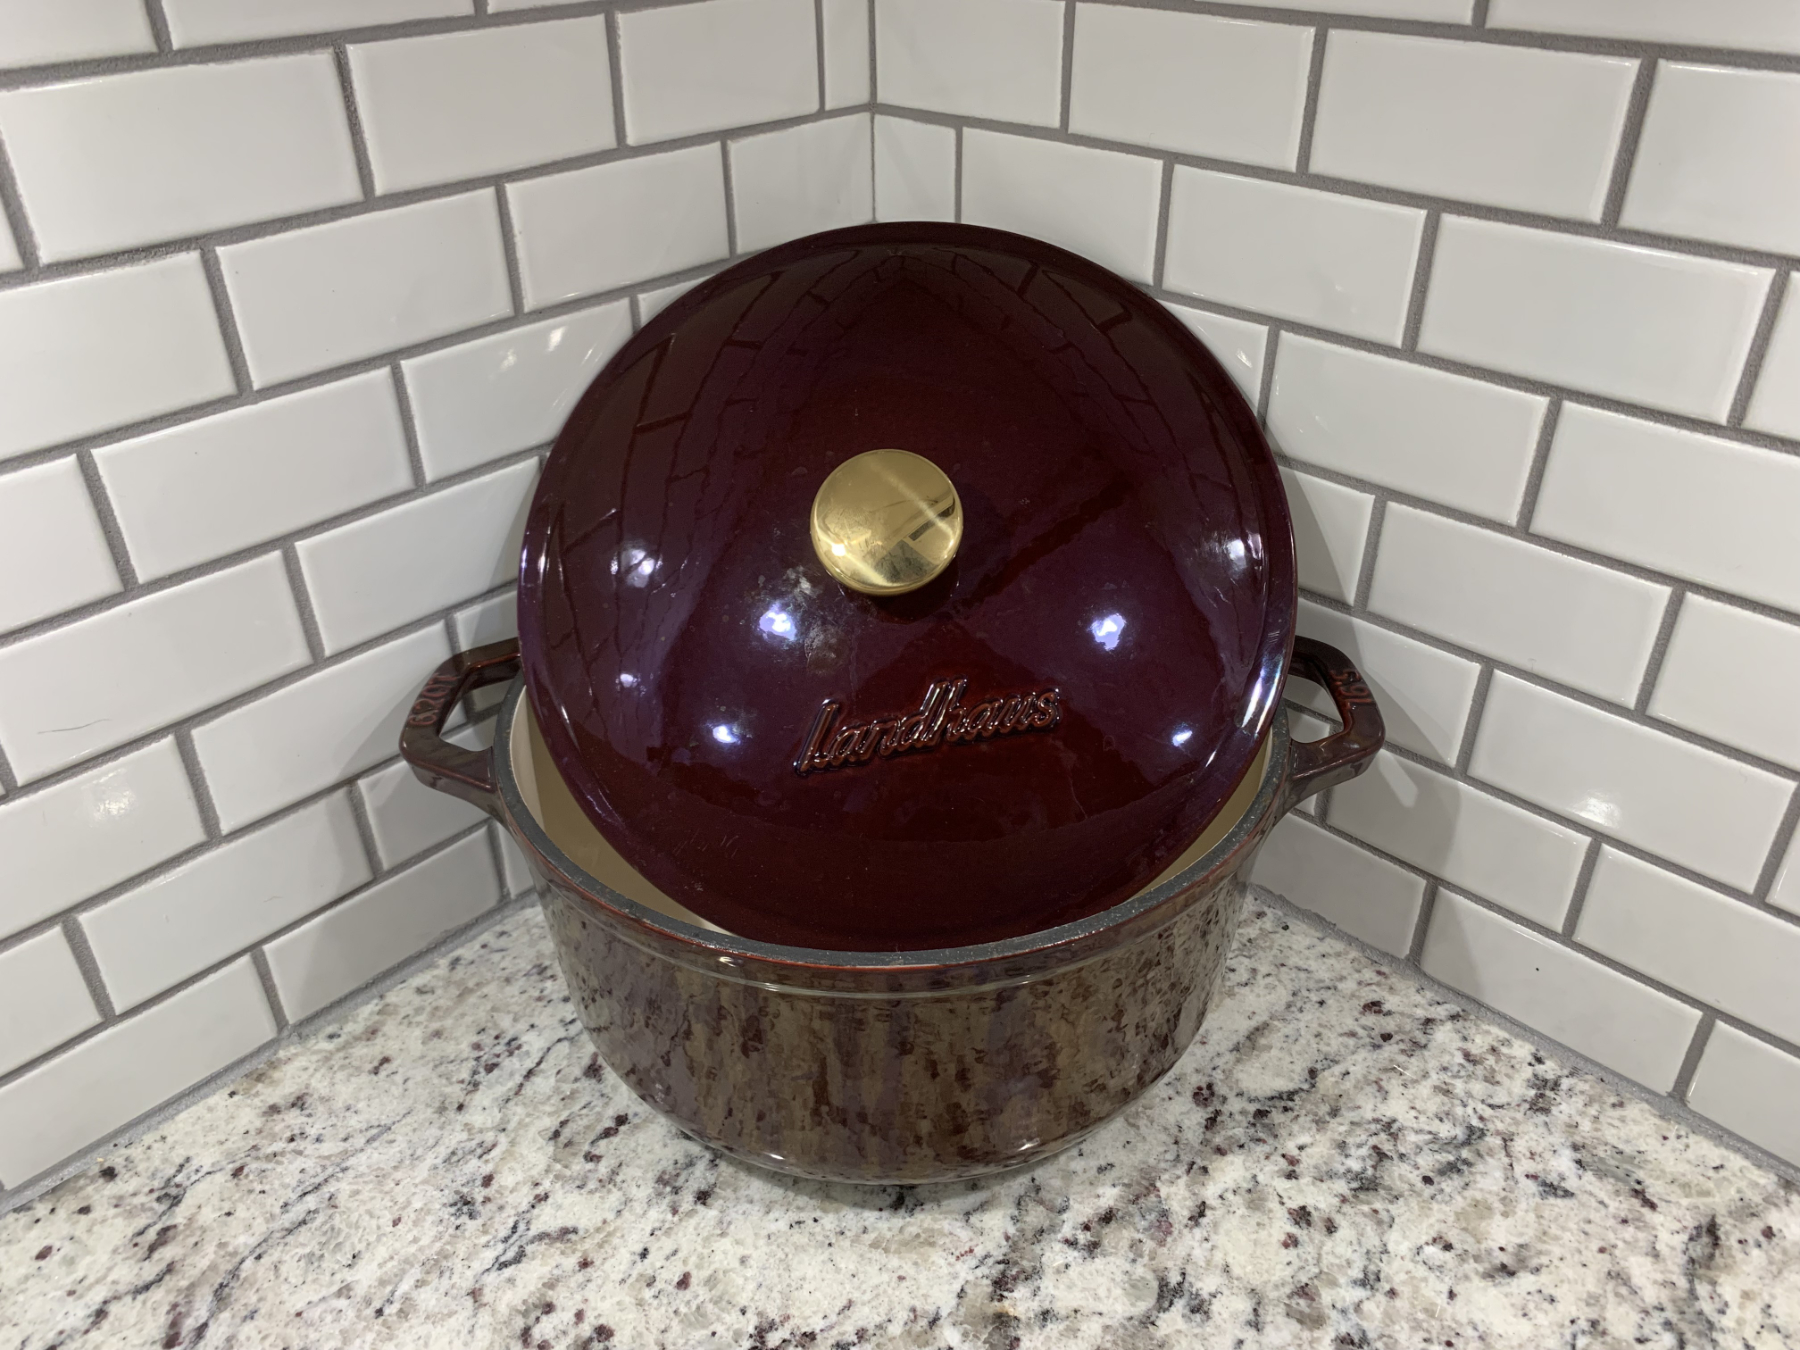 My Landhaus Dutch Oven - I don't know why it looks purple, but it isn't!